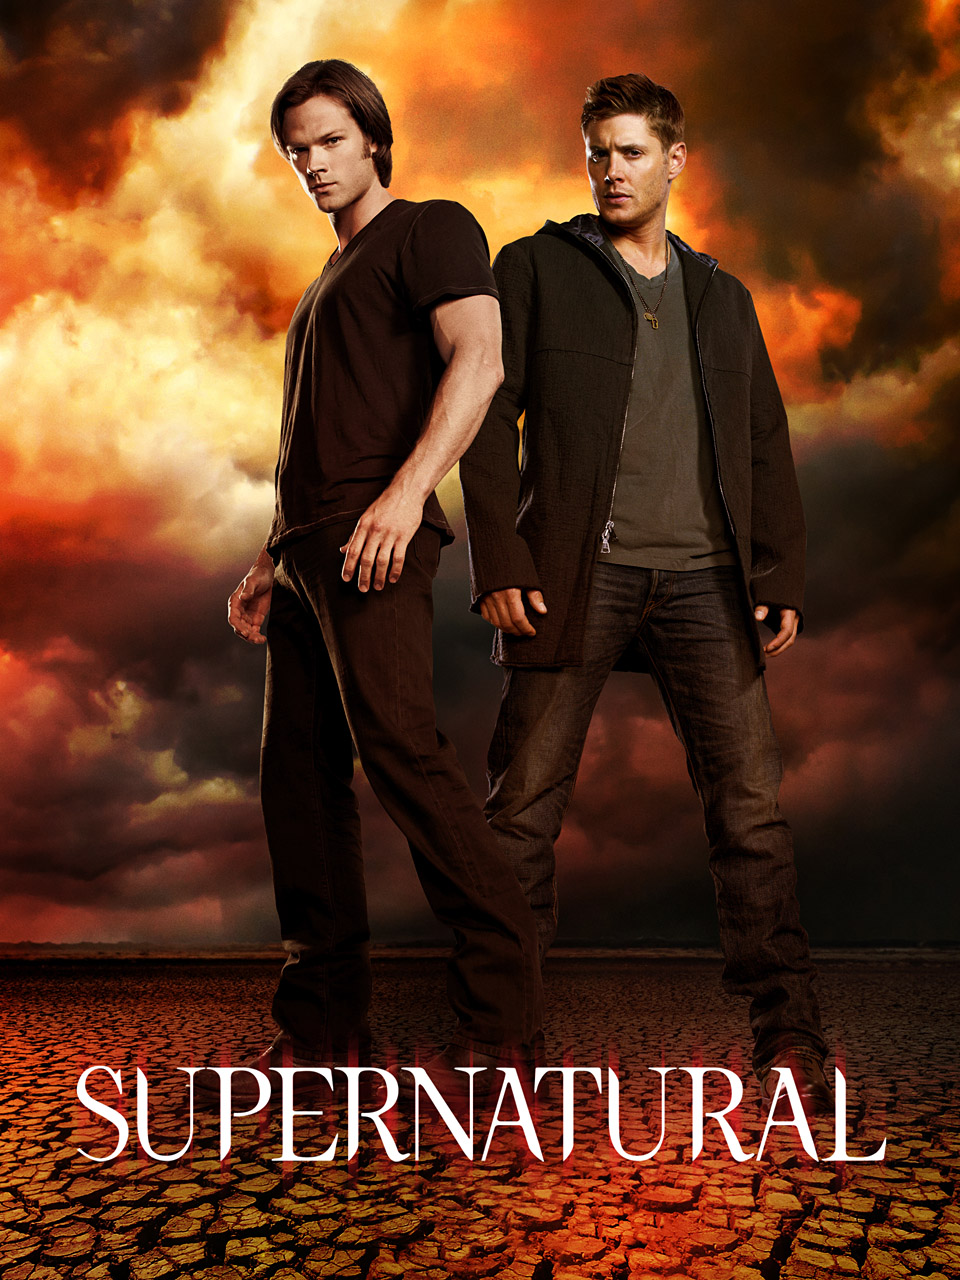 Supernatural poster ♥ - Supernatural Photo (35221909) - Fanpop